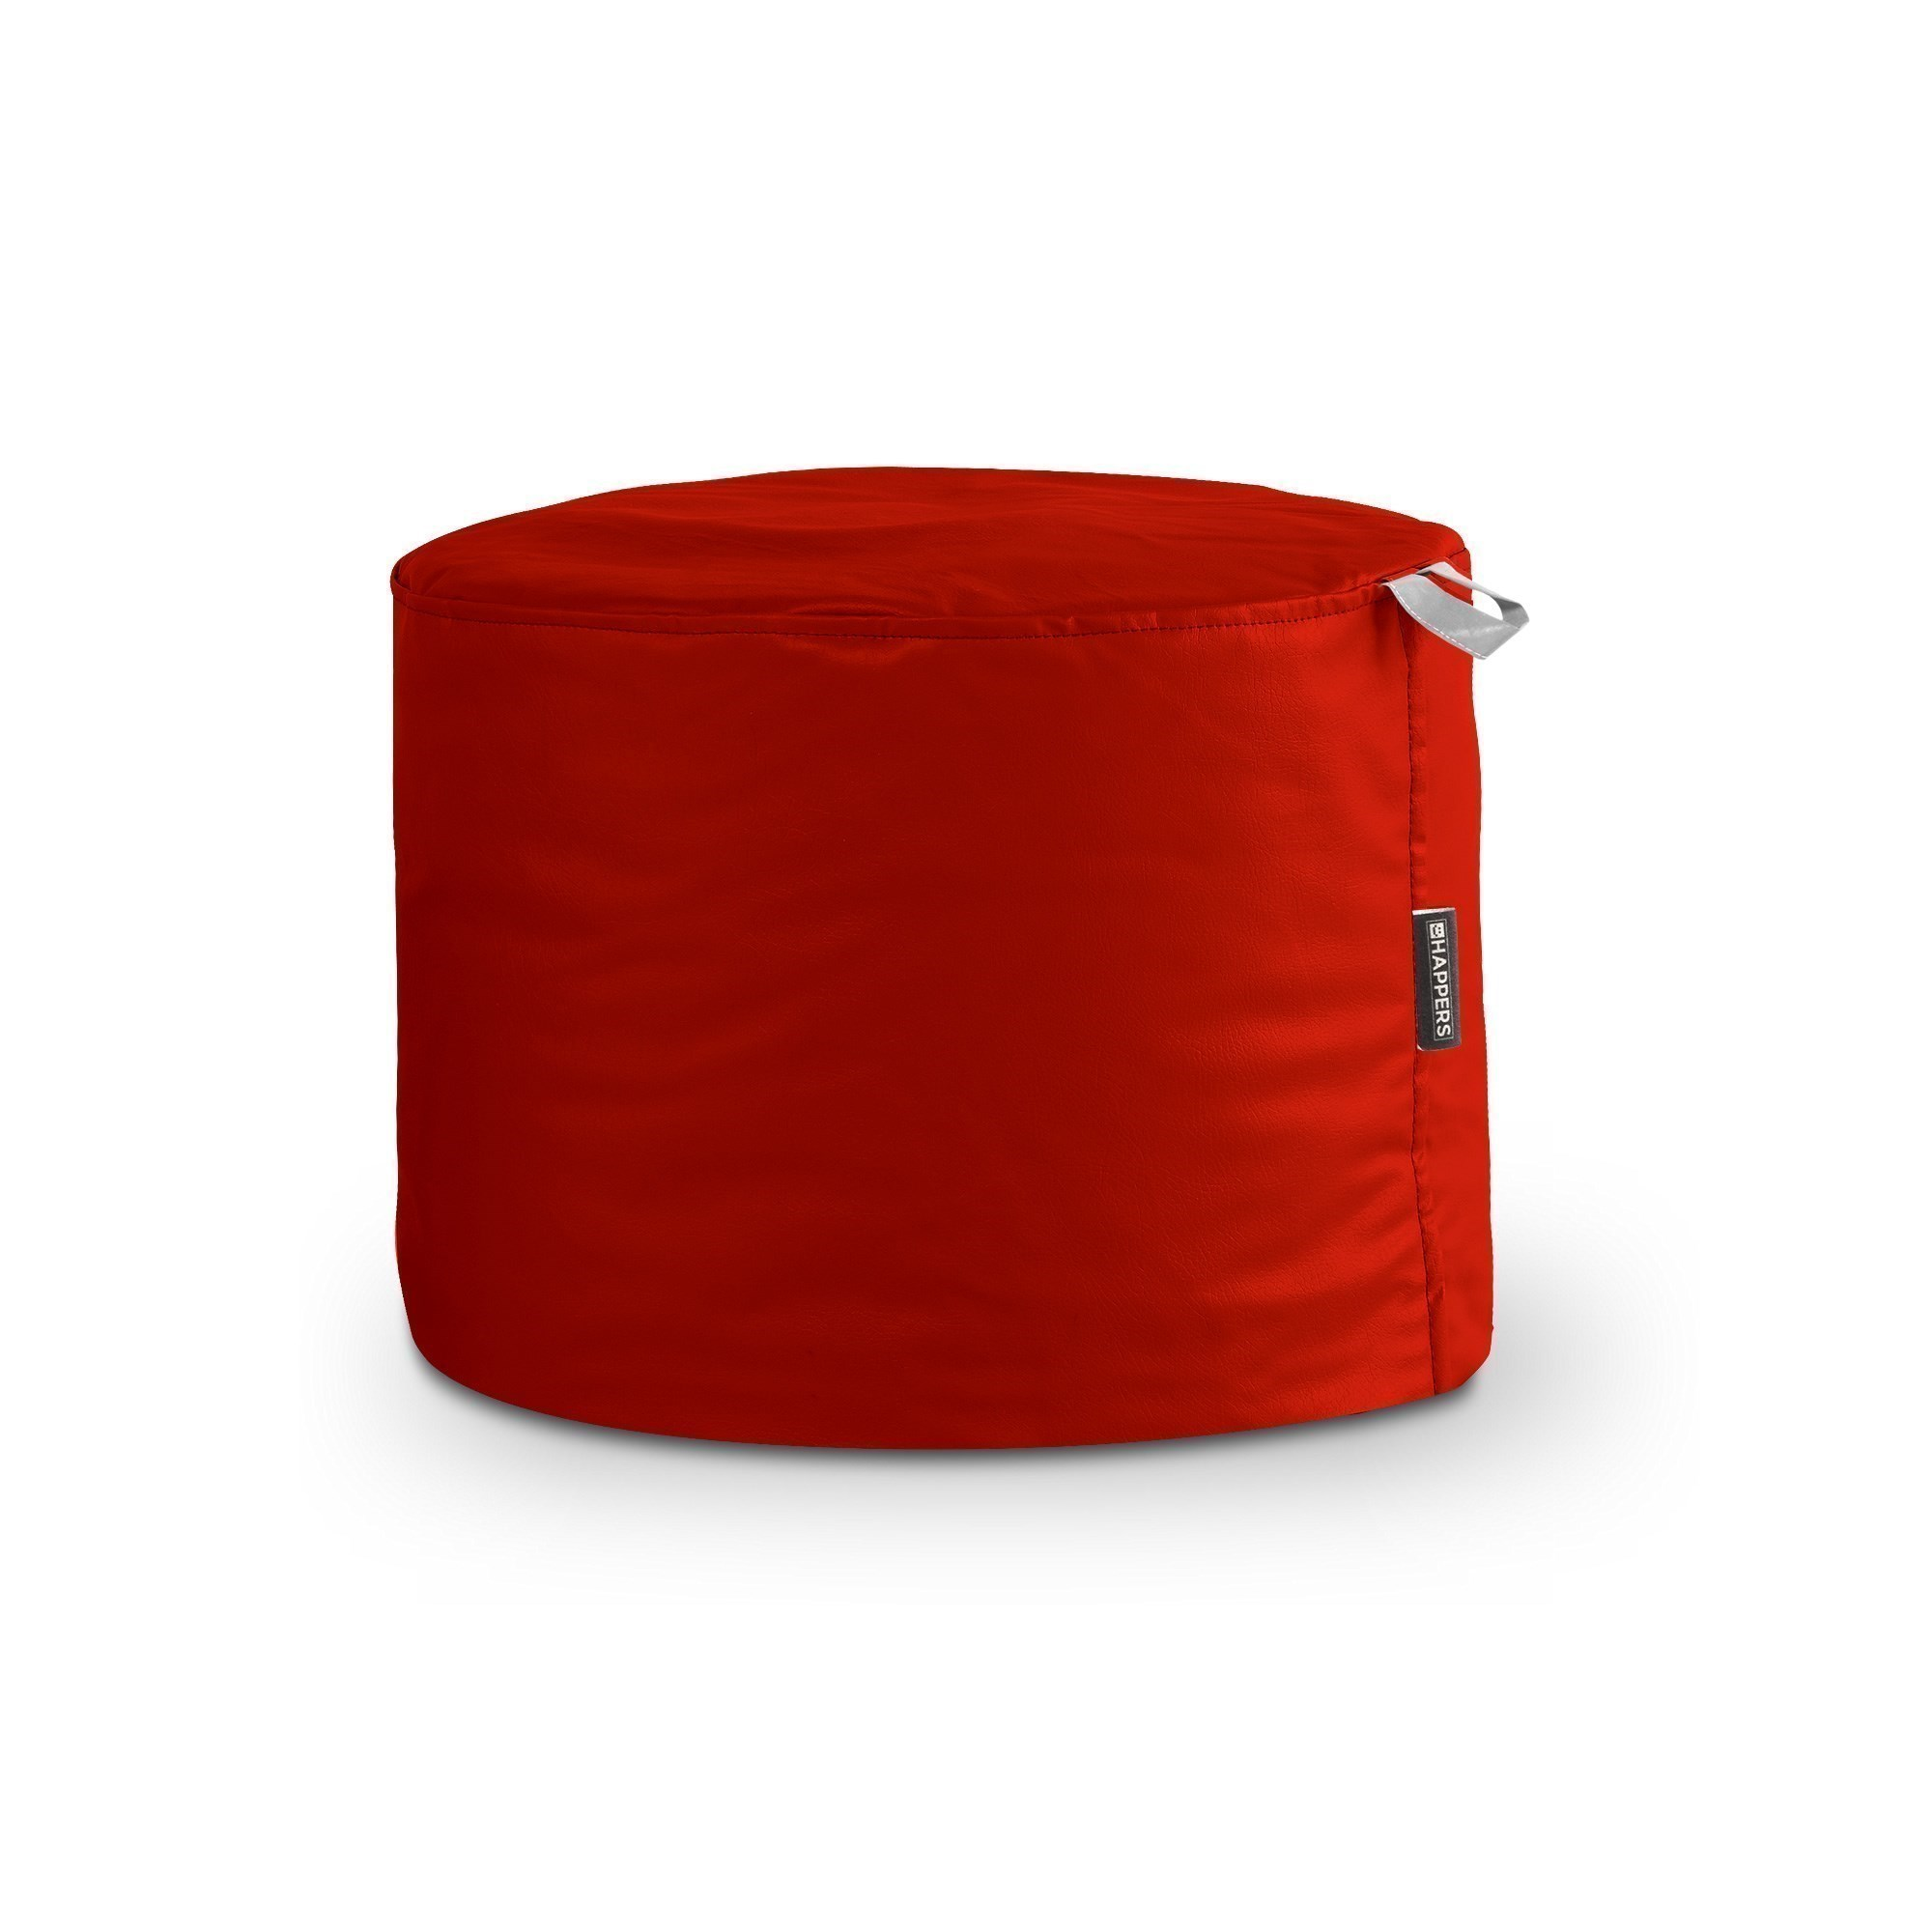 Puff Taburete Polipiel Outdoor Rojo Happers